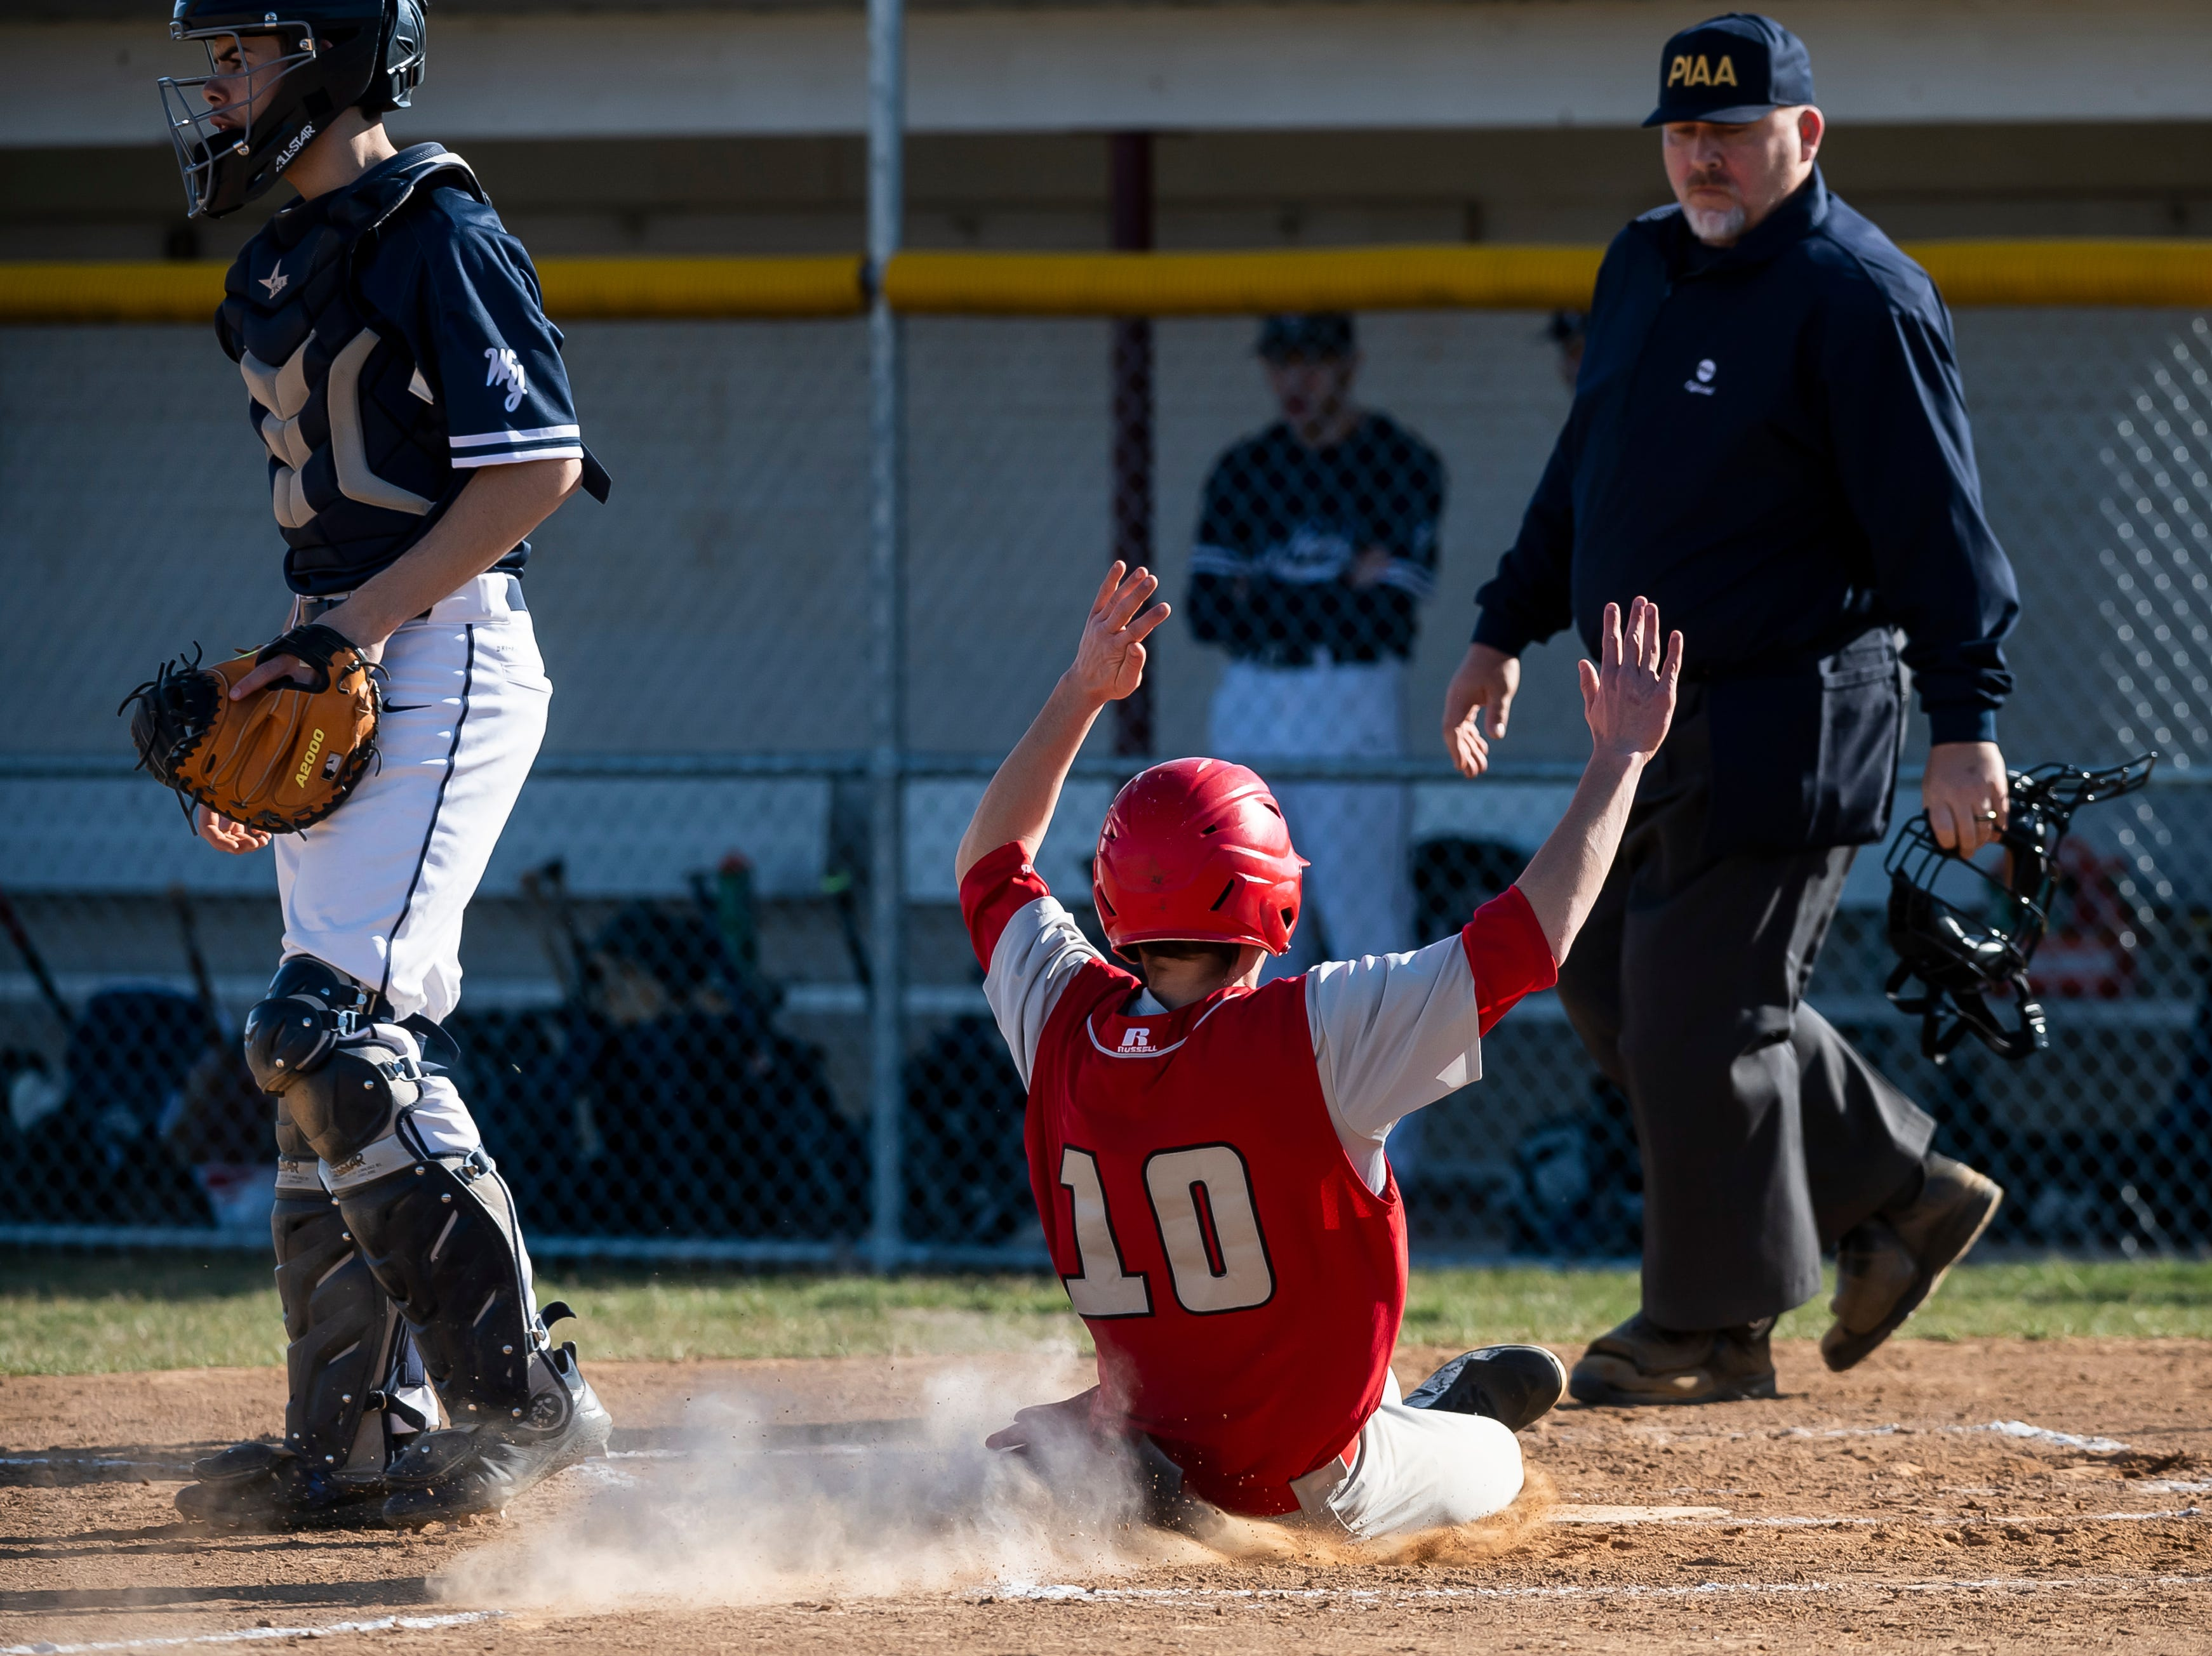 Bermudian Springs' Aden Juelich slides safely into home plate to score a run during a YAIAA baseball game against West York on Wednesday, April 3, 2019. The Eagles fell 14-11.